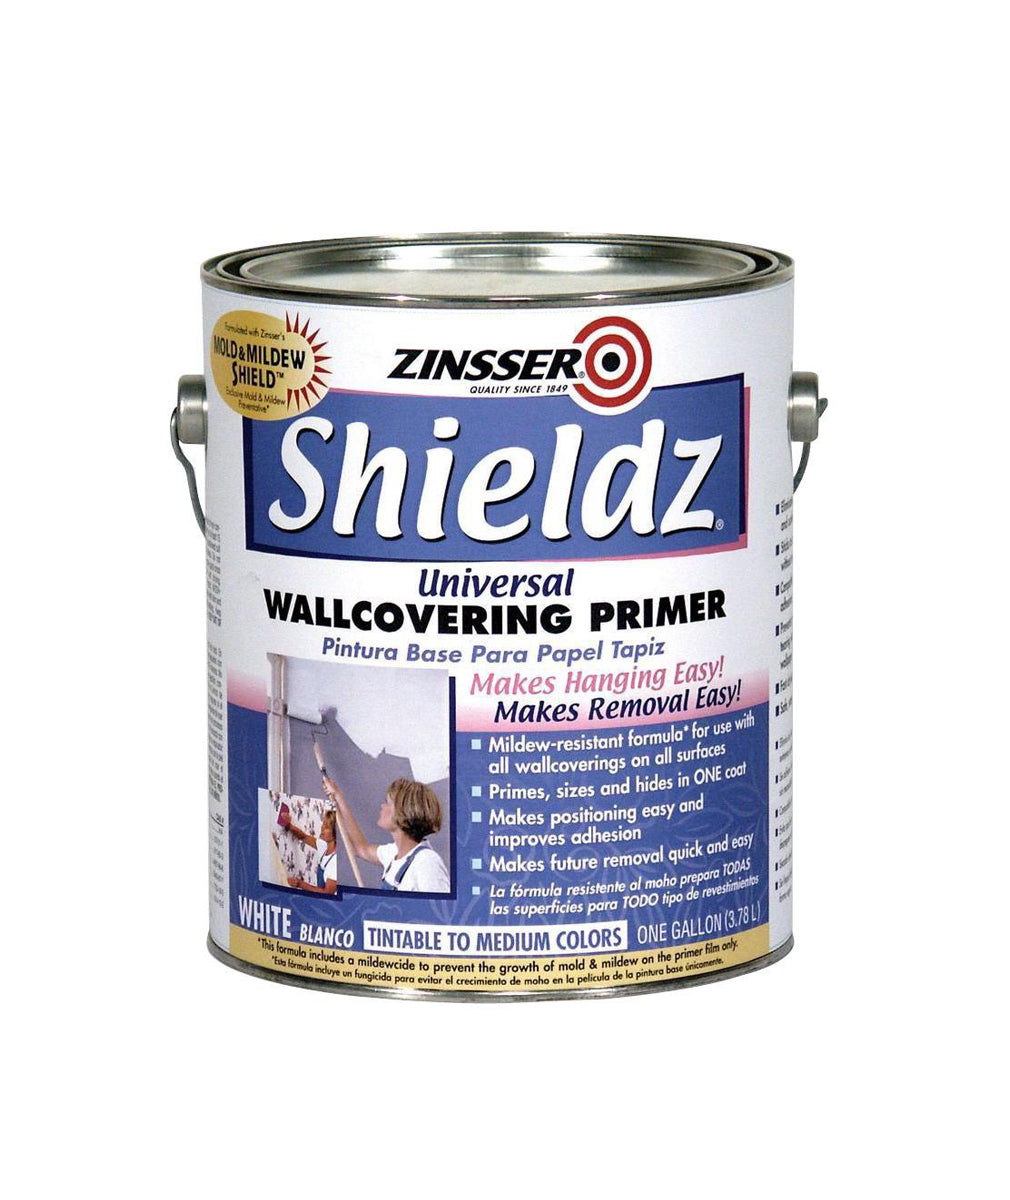 Wallcovering Primer Shieldz, available at Wallauer's in NY.